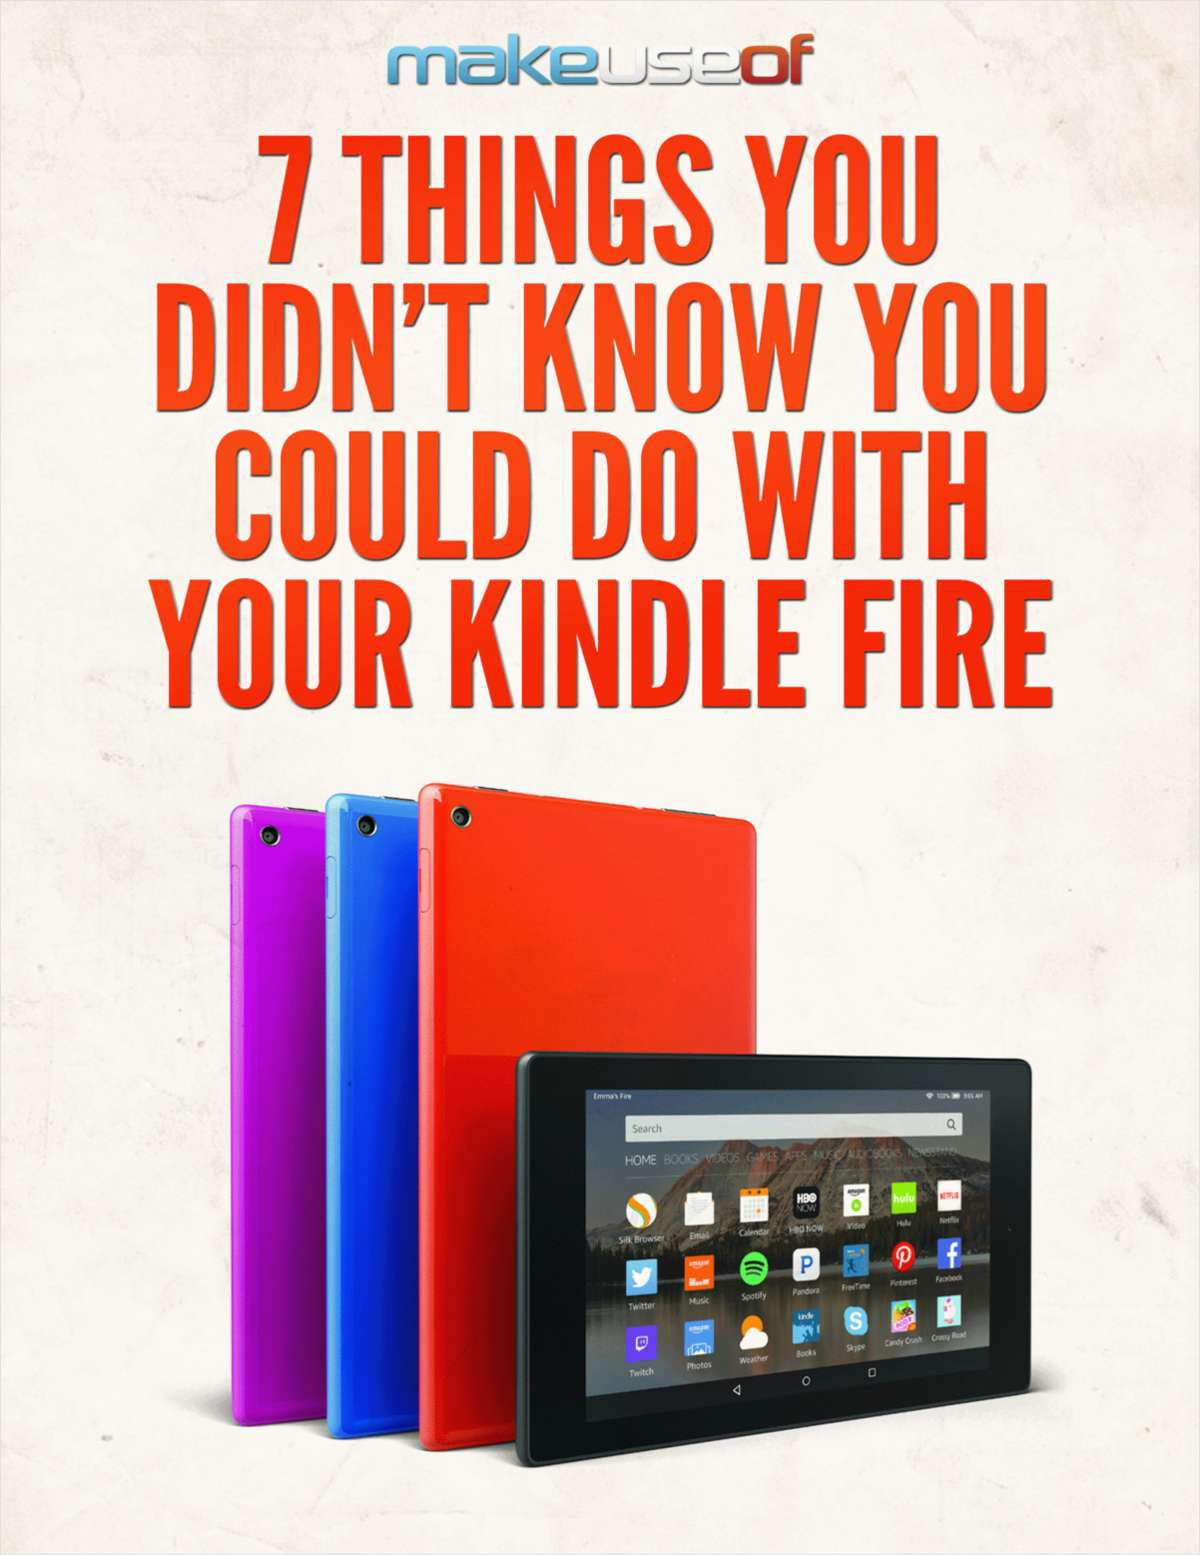 7 Things You Didn't Know You Could Do with Your Kindle Fire